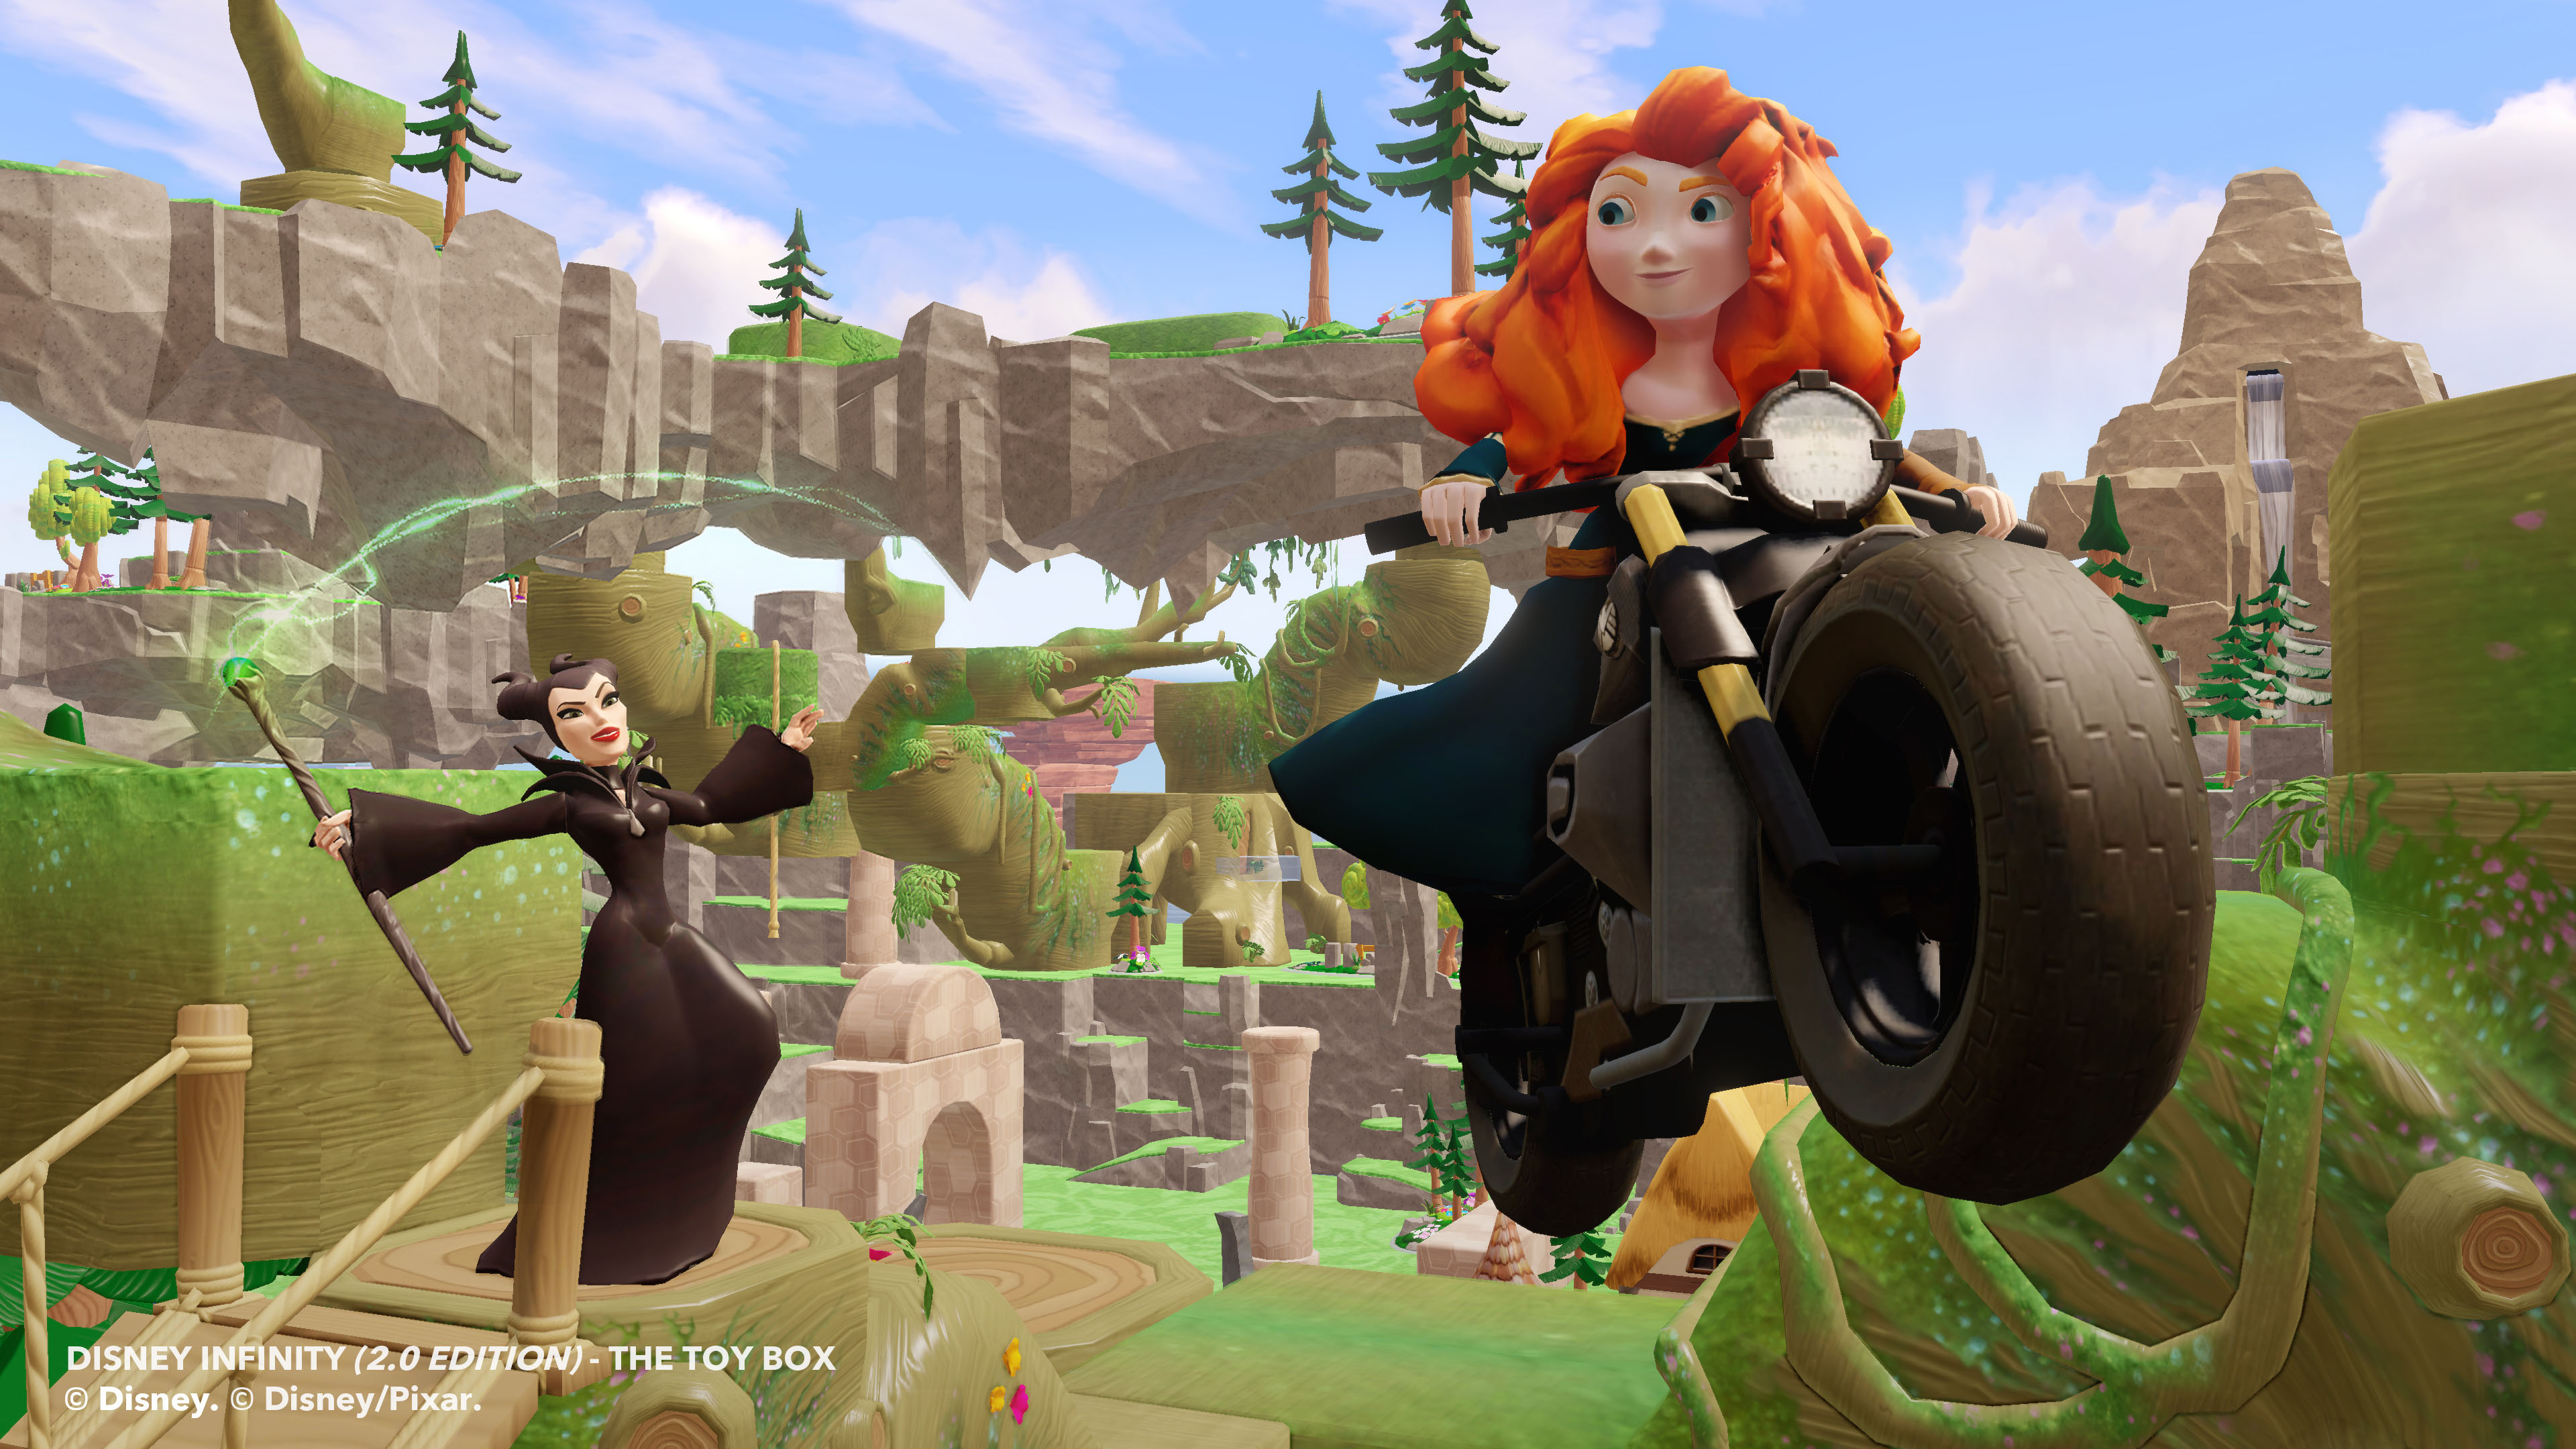 Disney Infinity 2.0 Welcomes Merida and Maleficent